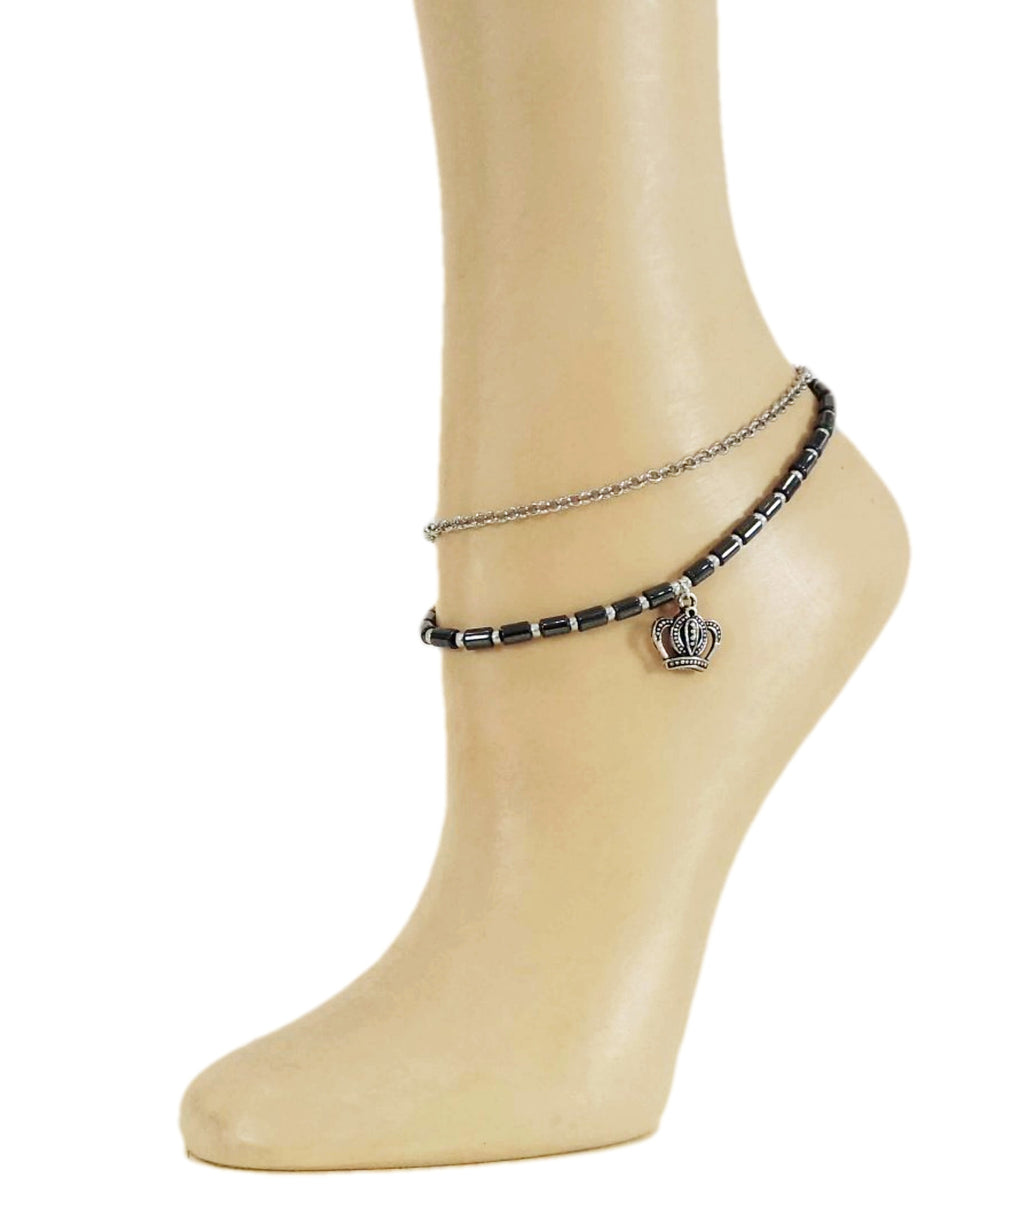 DIY Bree Anklet - Global Trendz Fashion®